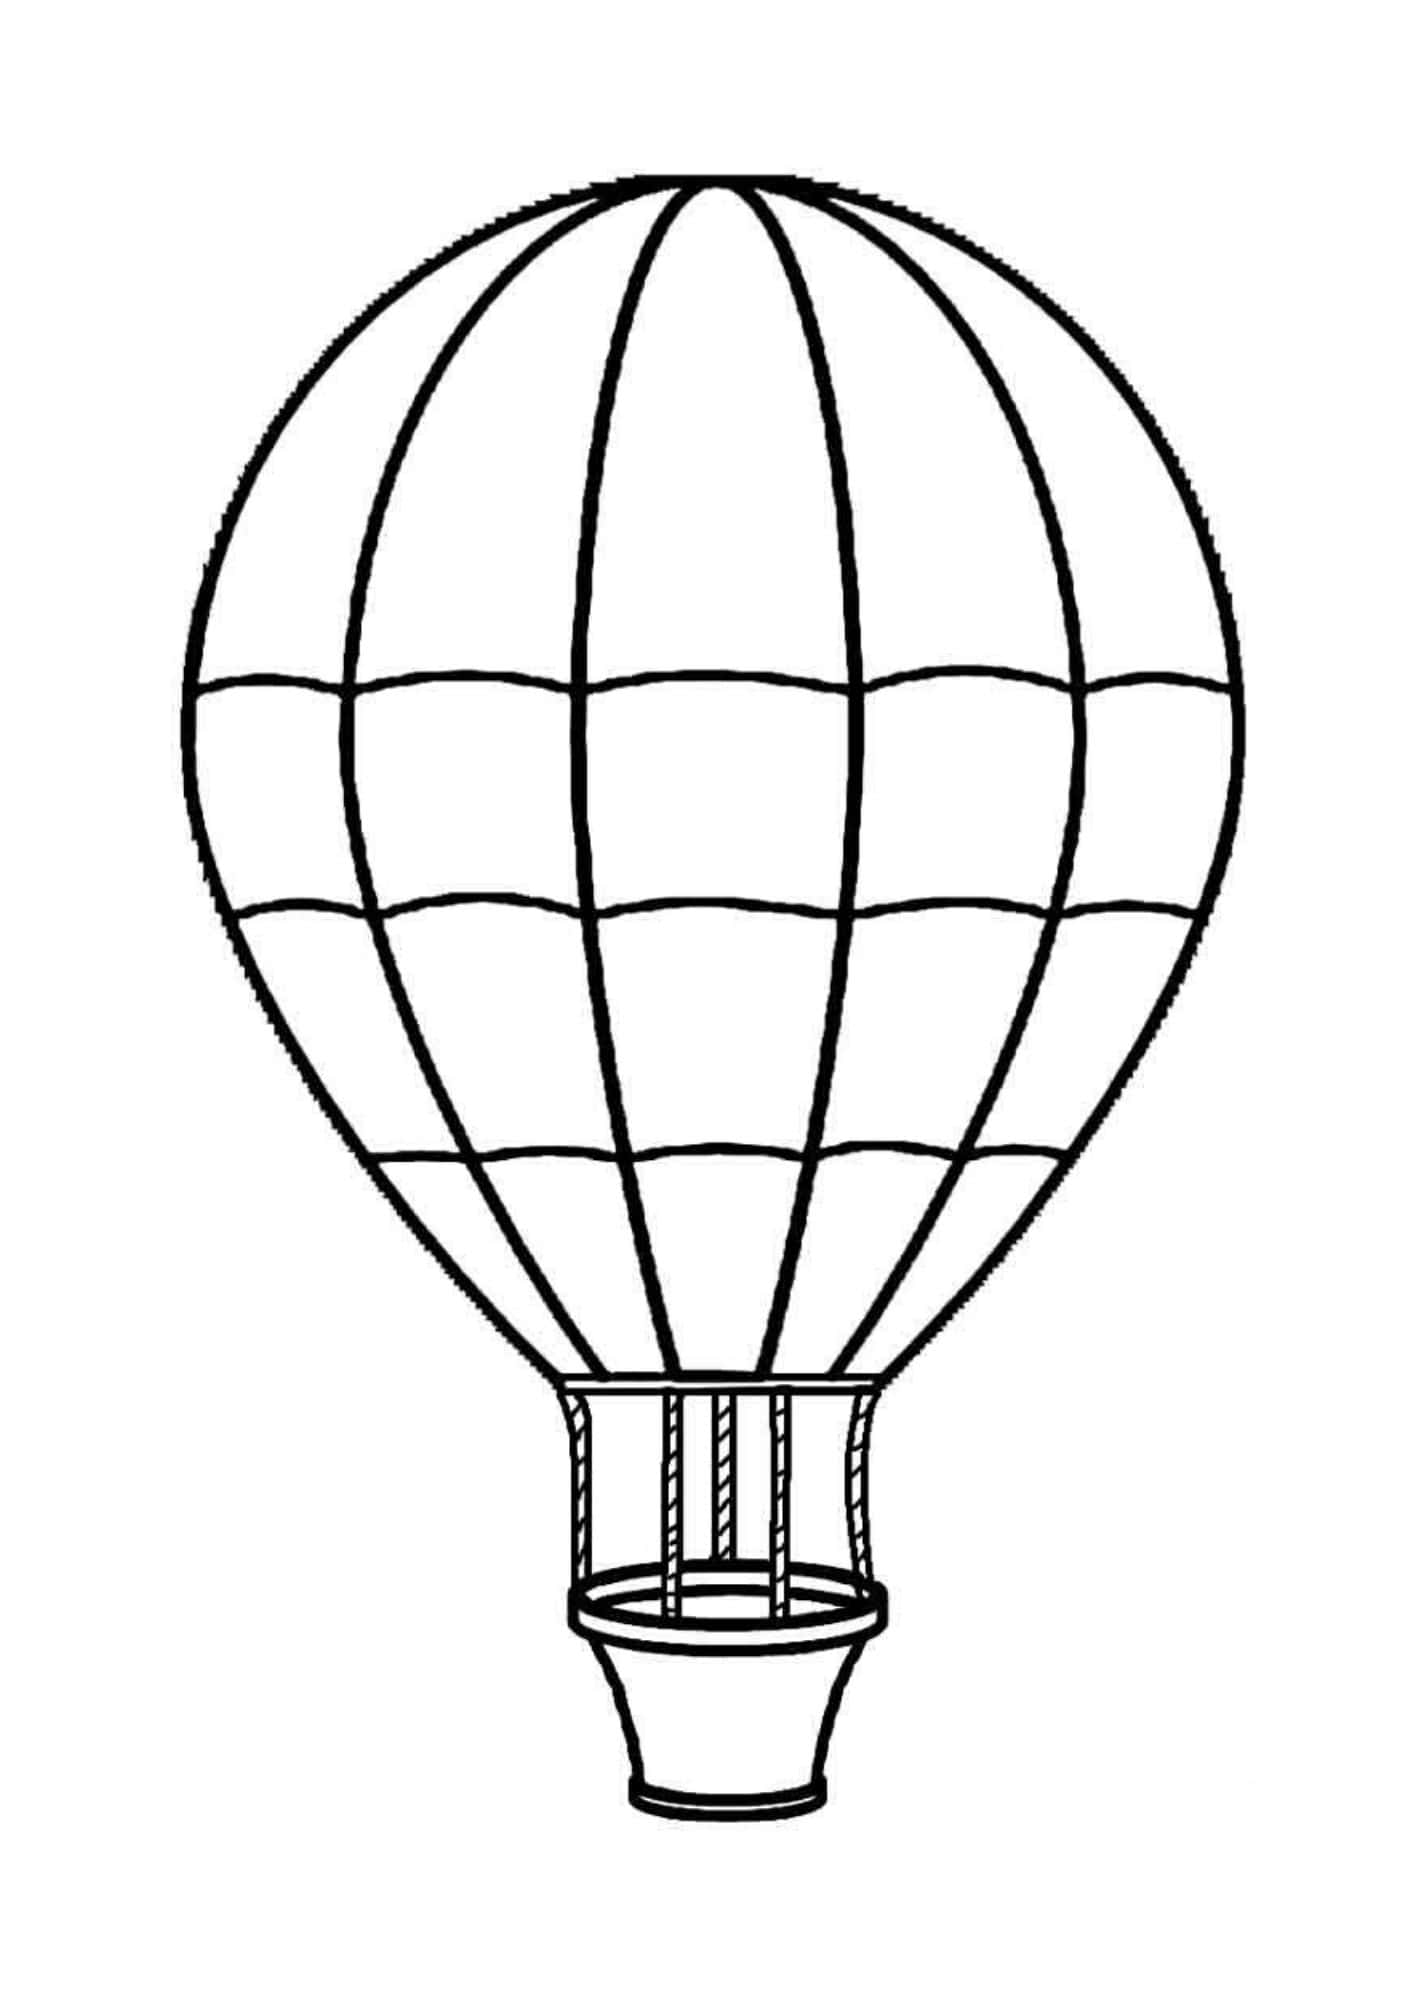 how to draw a air balloon hot air balloon illustration drawing engraving ink line to draw air a balloon how